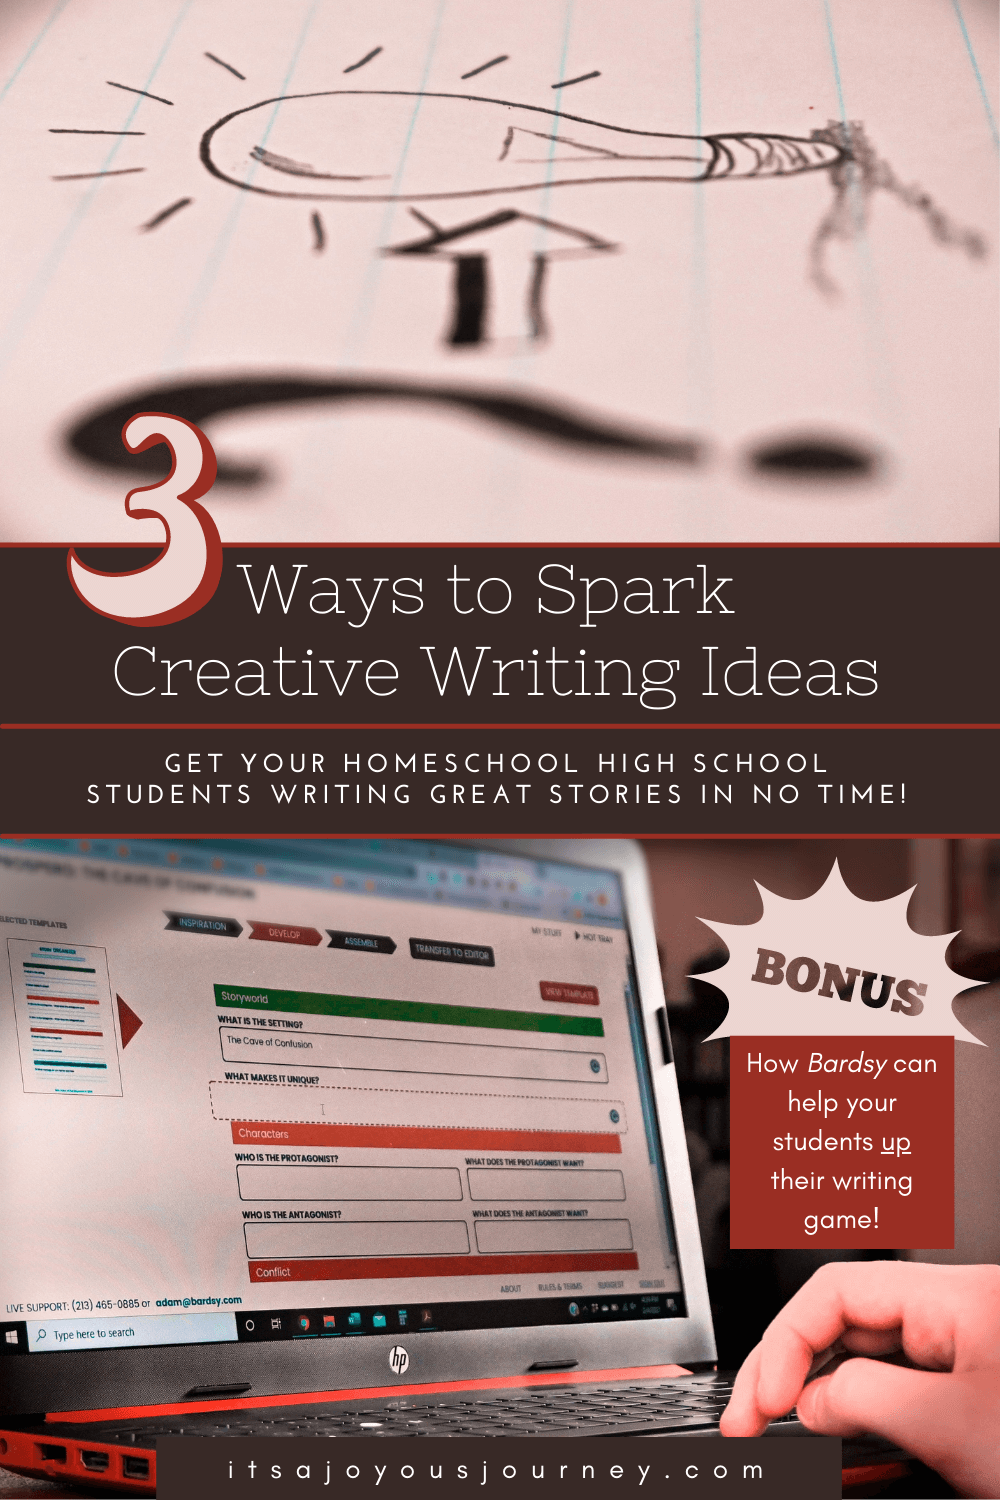 Creative Writing Ideas Pinterest